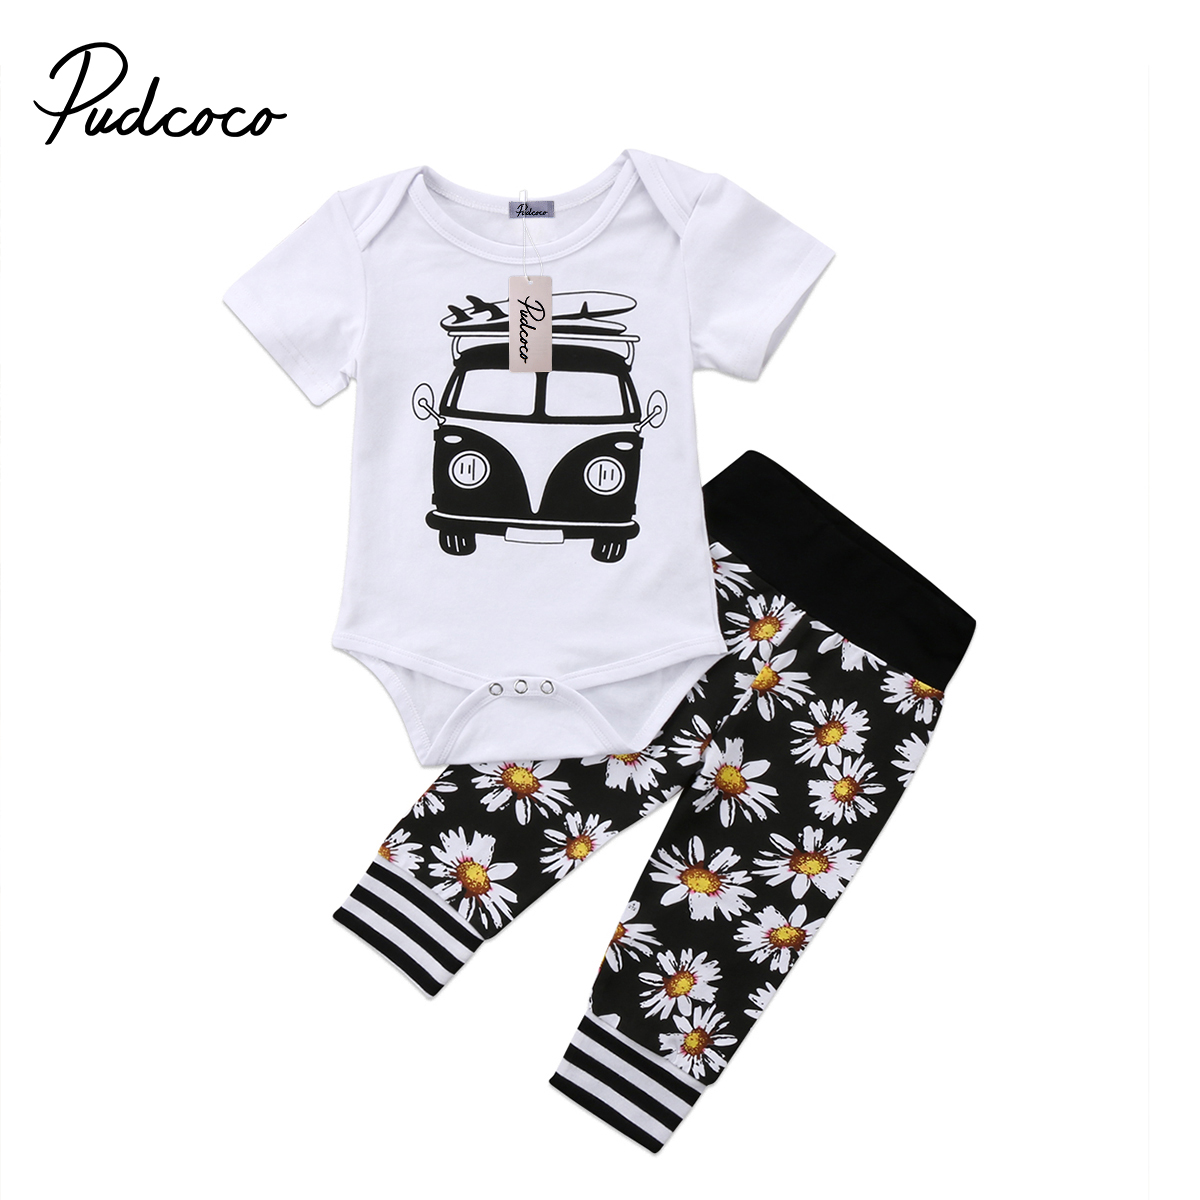 Pudcoco Cute Newborn Baby Boys Girls Sunflower Clothing Sets Cotton Top Romper Long Pants Outfits Set Clothes puseky 2017 infant romper baby boys girls jumpsuit newborn bebe clothing hooded toddler baby clothes cute panda romper costumes